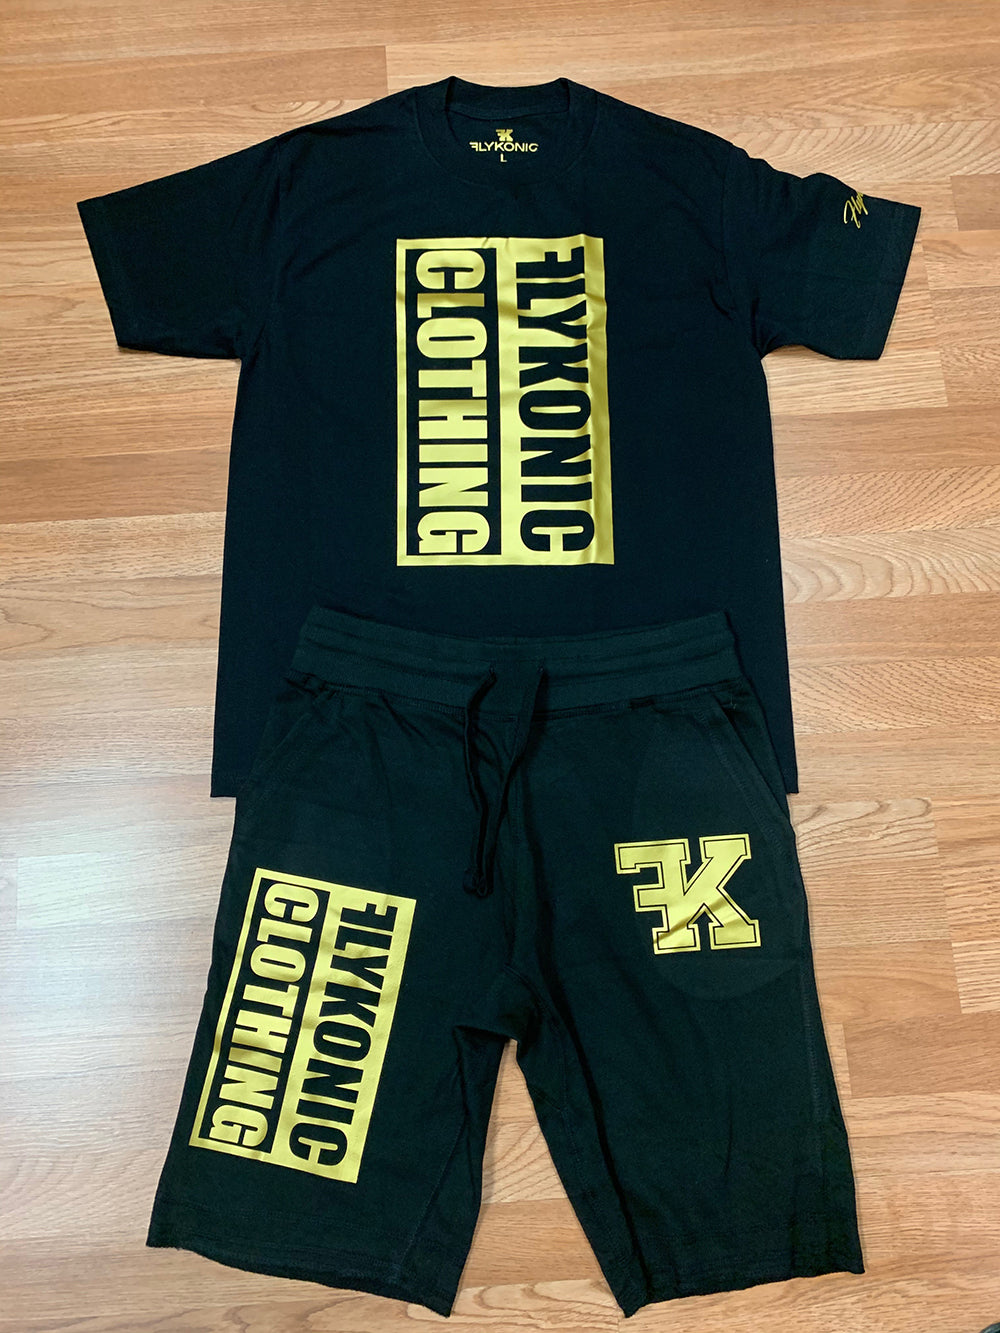 Flykonic Clothing Short Set Outfit